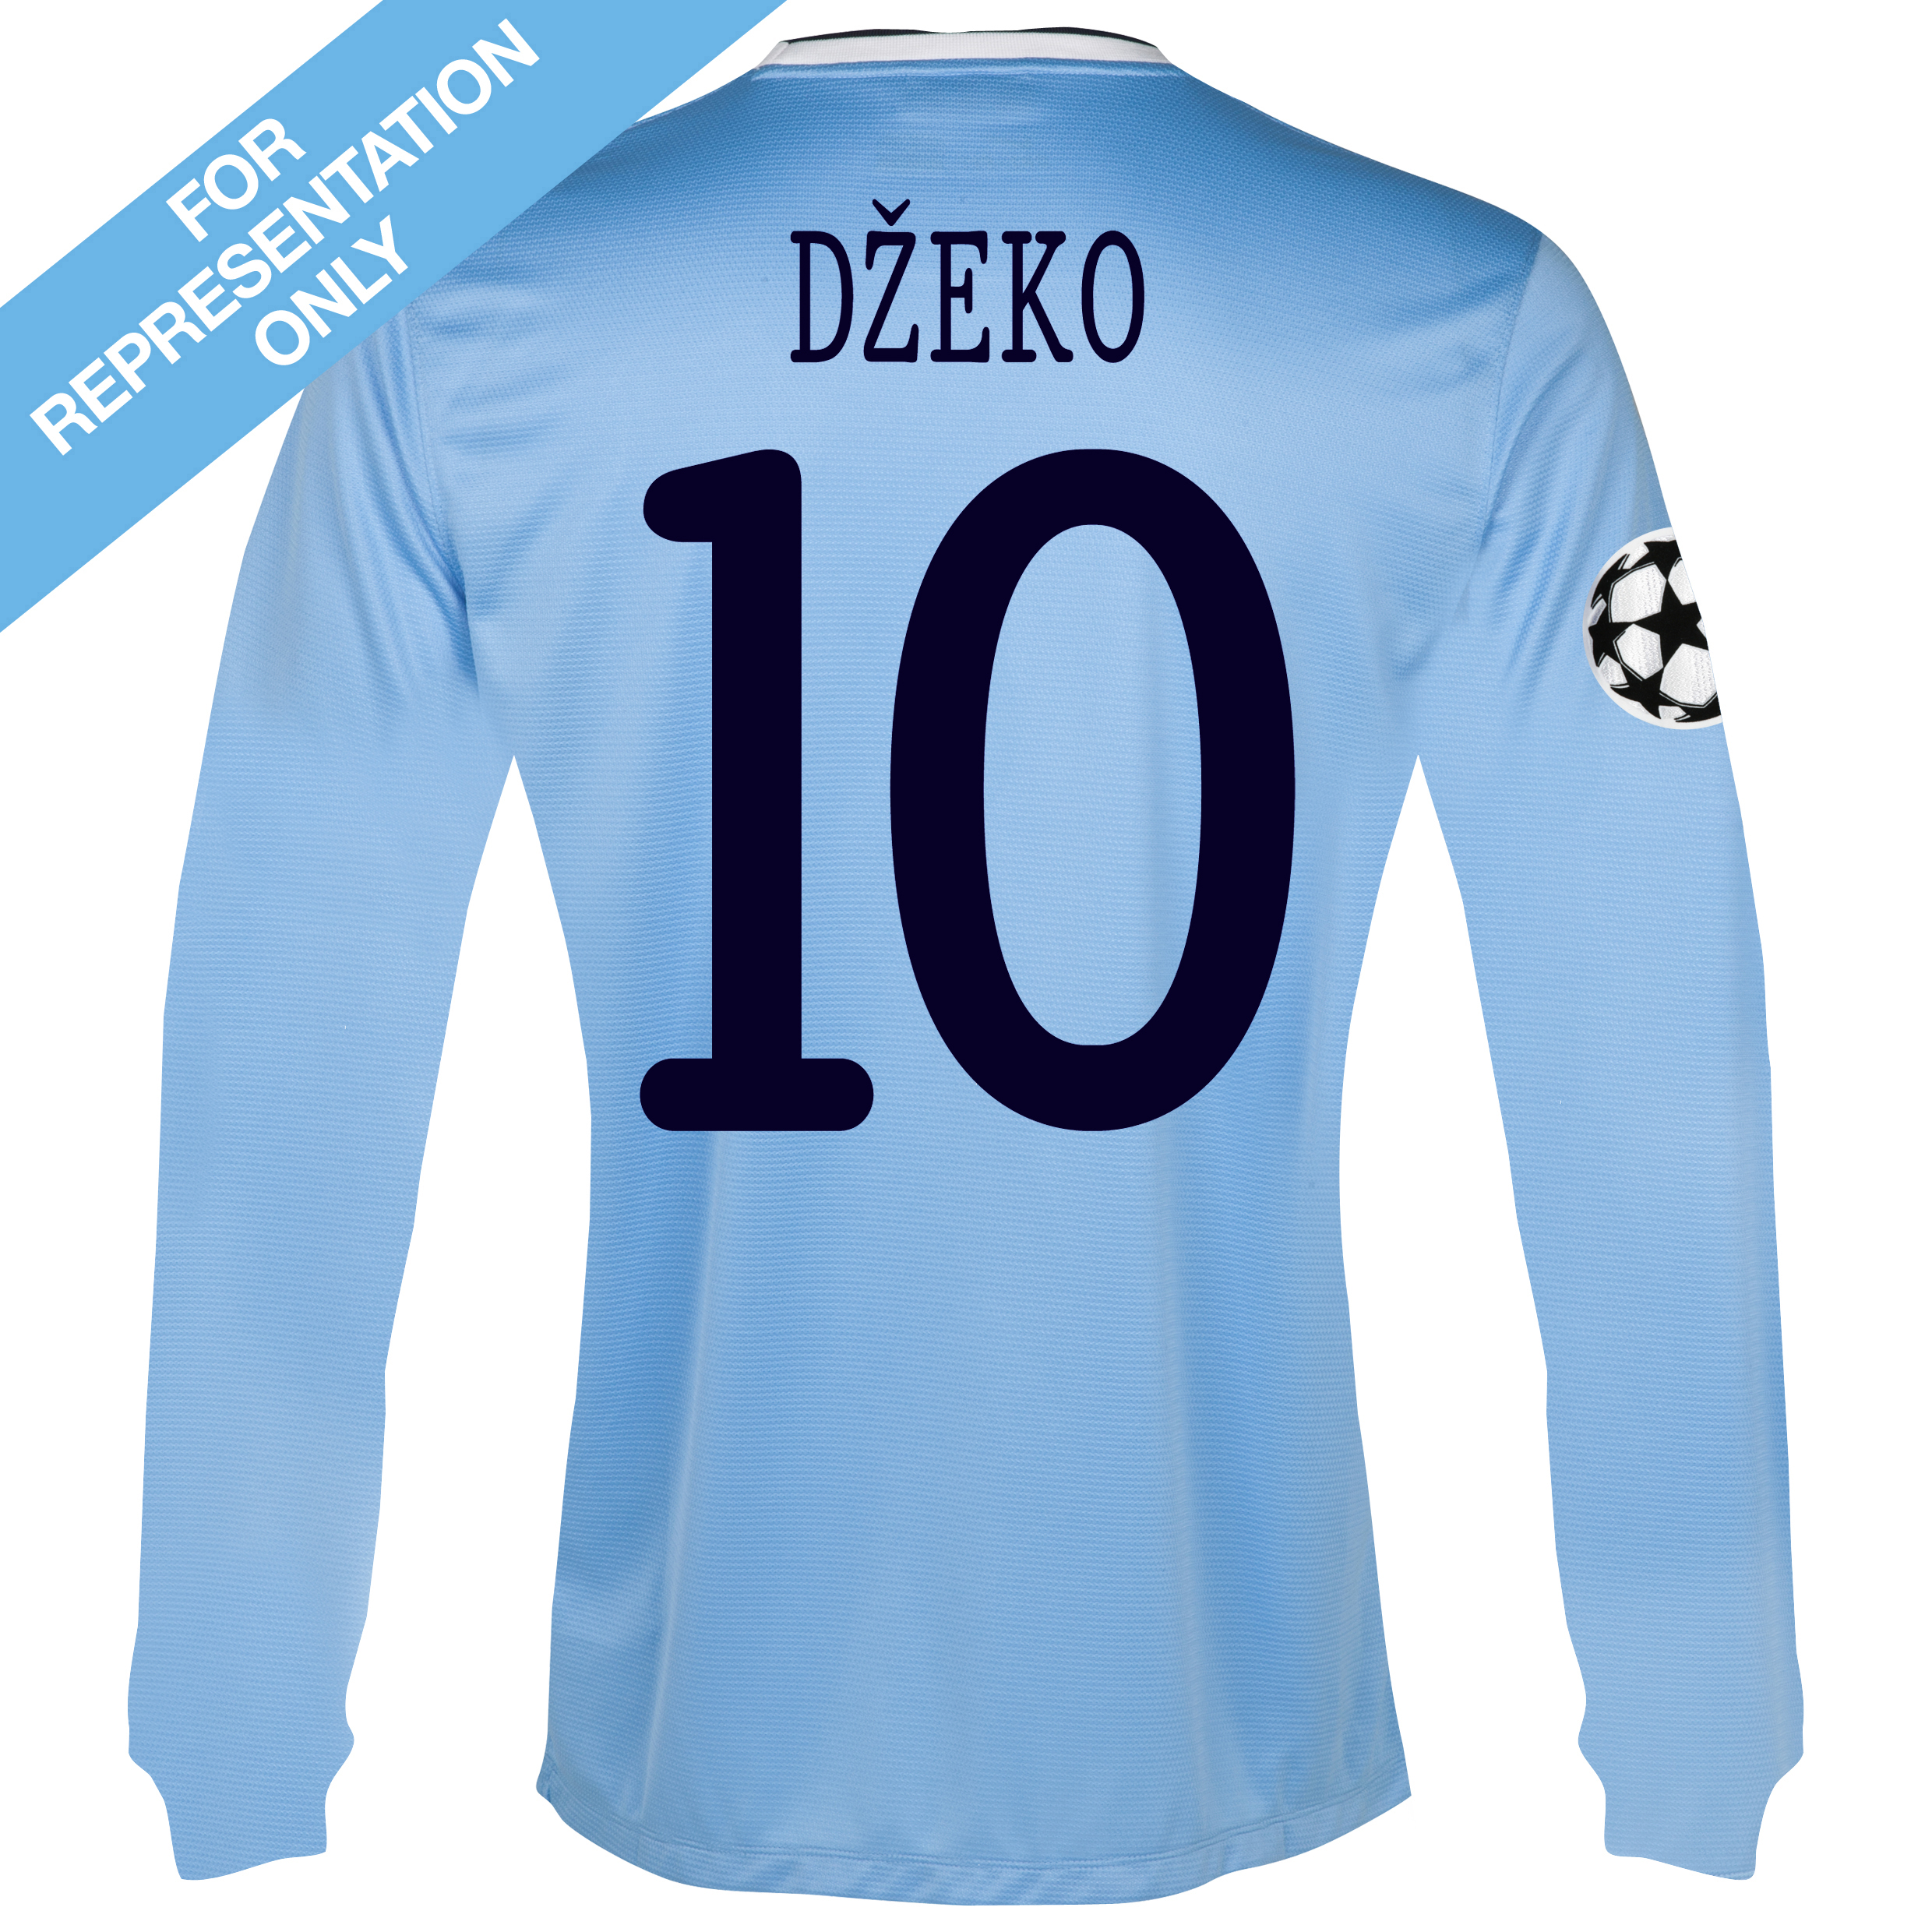 Manchester City UEFA Champions League Home Shirt 2013/14 - Long Sleeved with Dzeko 10 printing